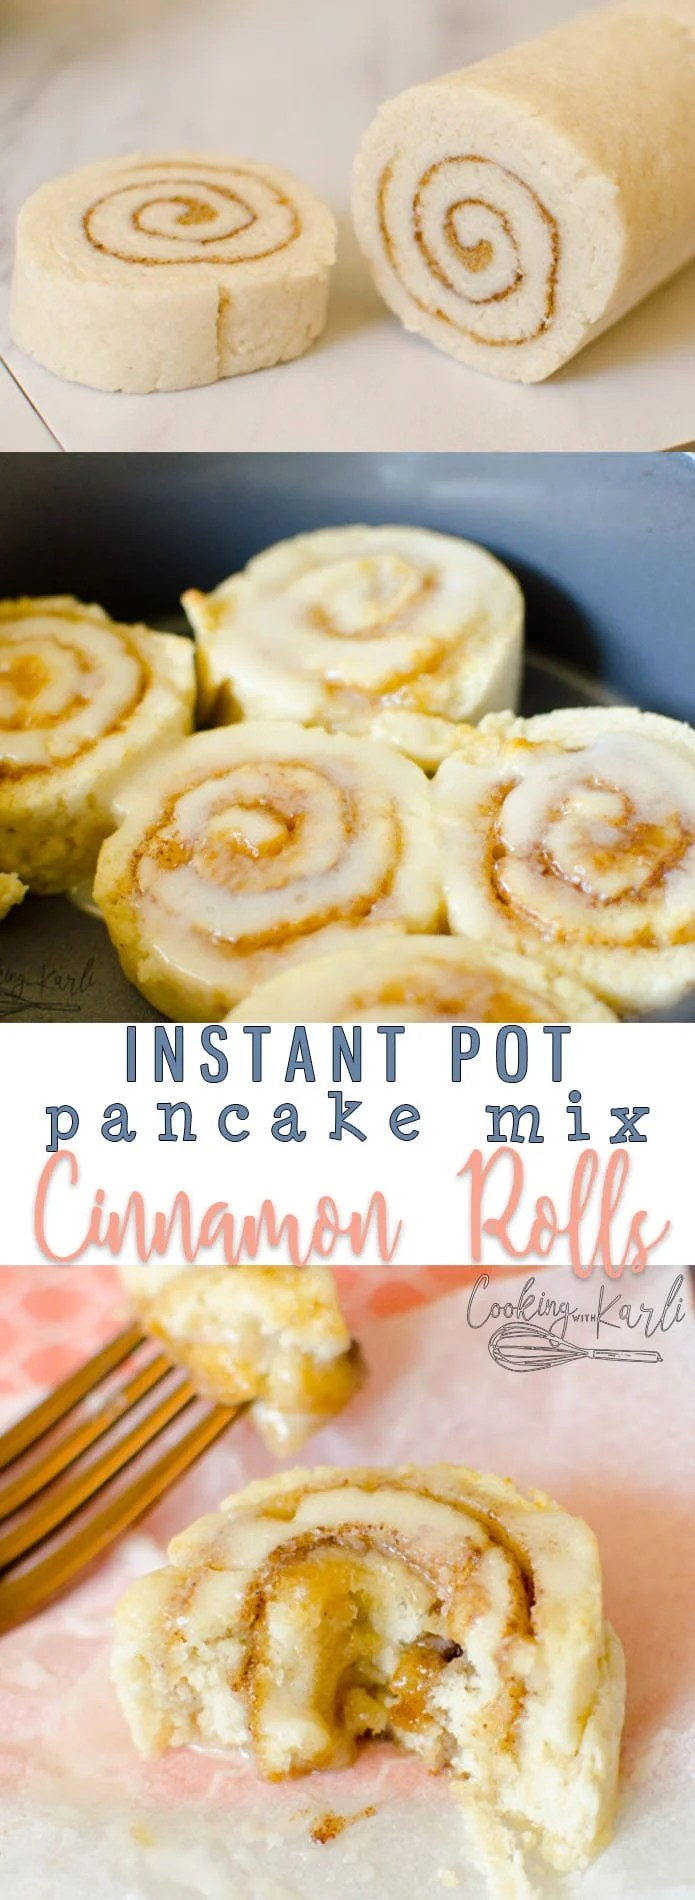 Pancake Mix Cinnamon Rolls are fast, easy and tasty! The dough is made from just three ingredients; pancake mix, sugar and milk. Cooking these in the Instant Pot keeps them soft and moist. Pancake Mix Cinnamon Rolls will be a new favorite treat! |Cooking with Karli| #instantpot #breakfast #pressurecooker #cinnamonrolls #pancakemix #hack #recipe